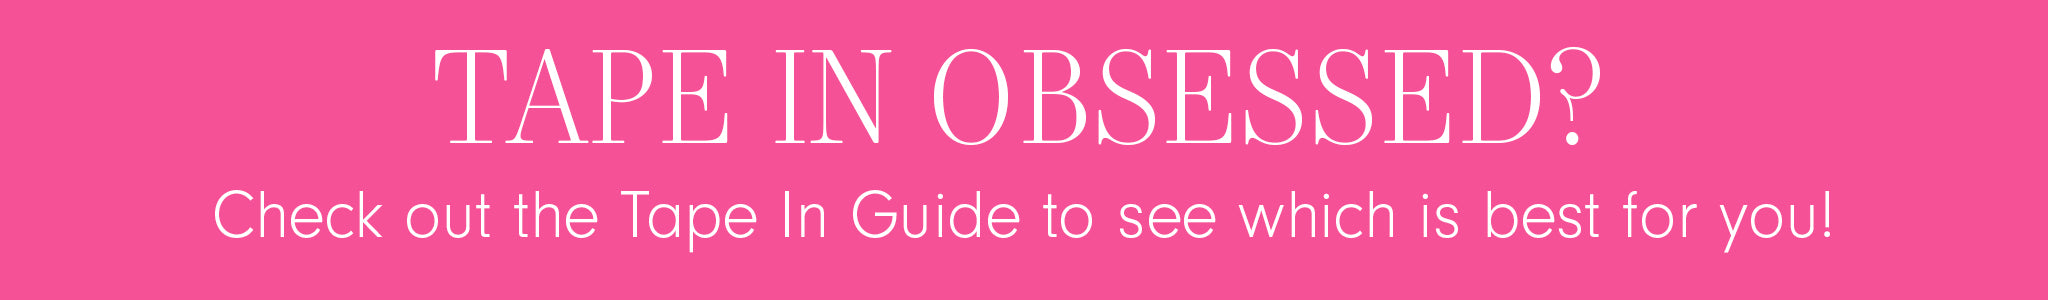 Tape in Obsessed? Check out the Tape In Guide to see which is bet for you!